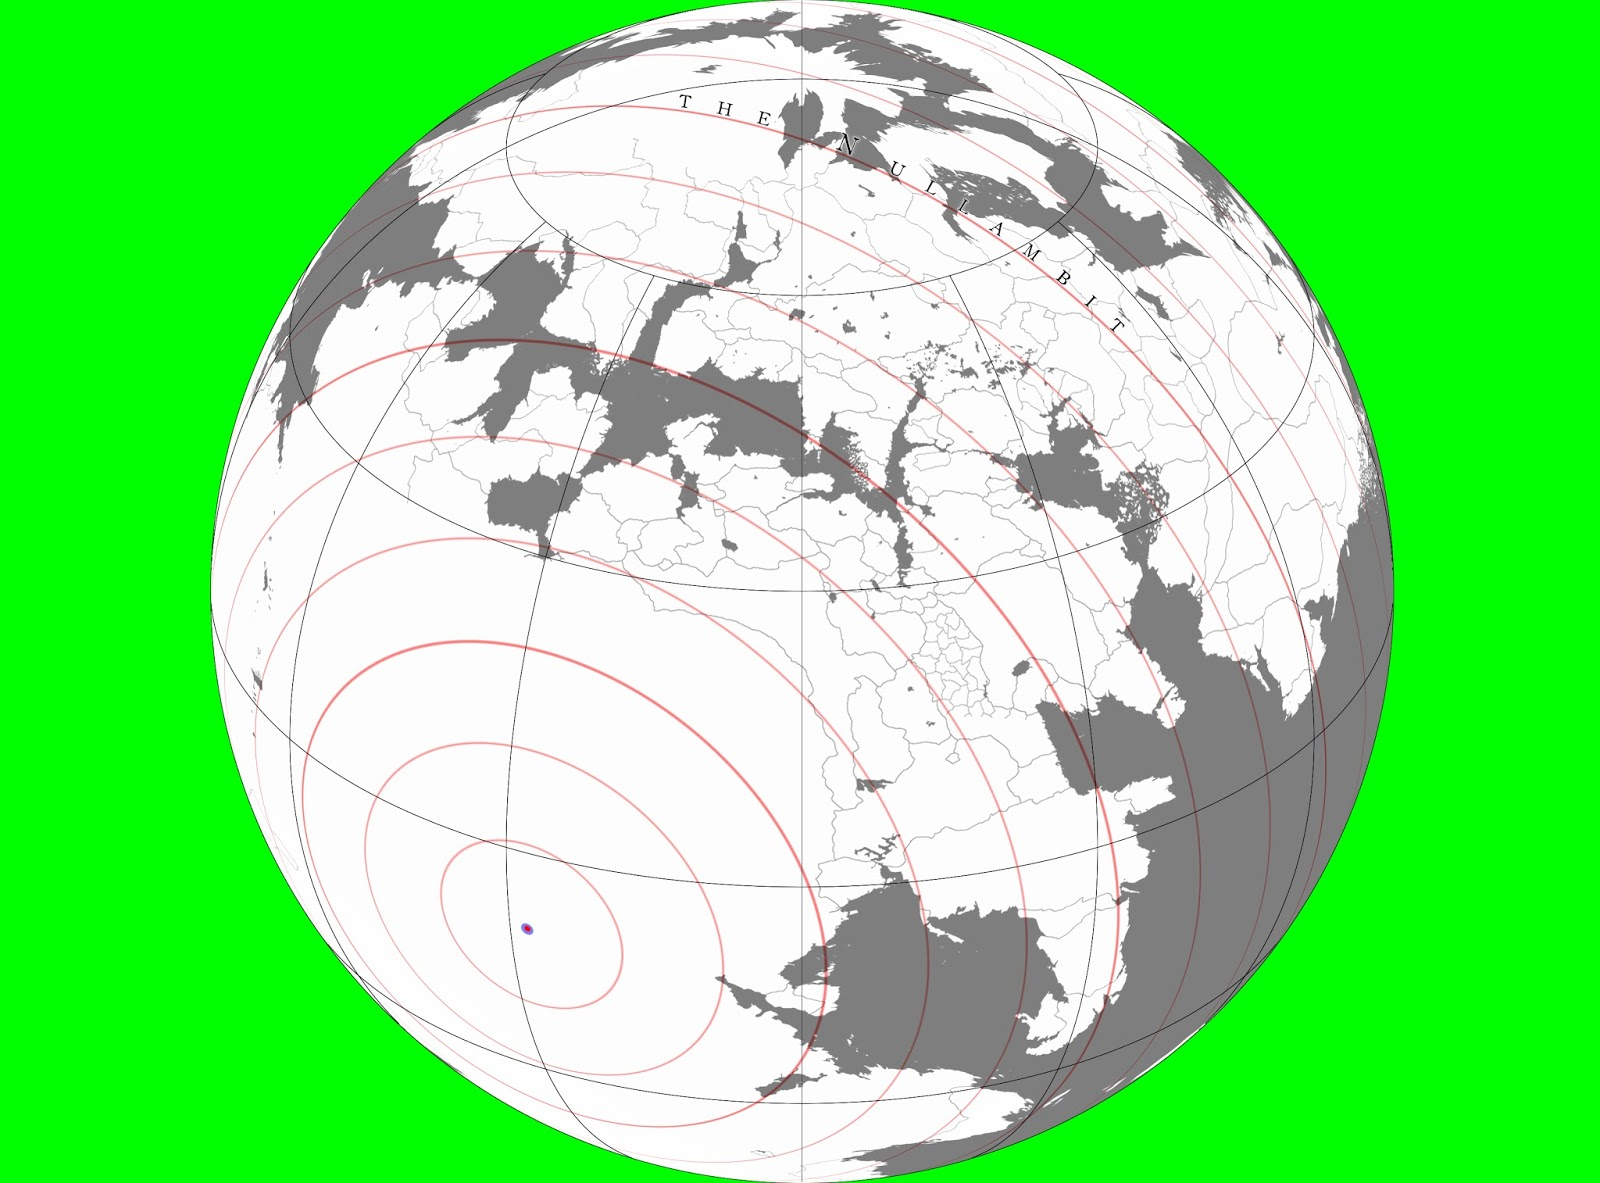 Creating a physical map globe worldbuilding mapcreating a physical map globe gumiabroncs Gallery